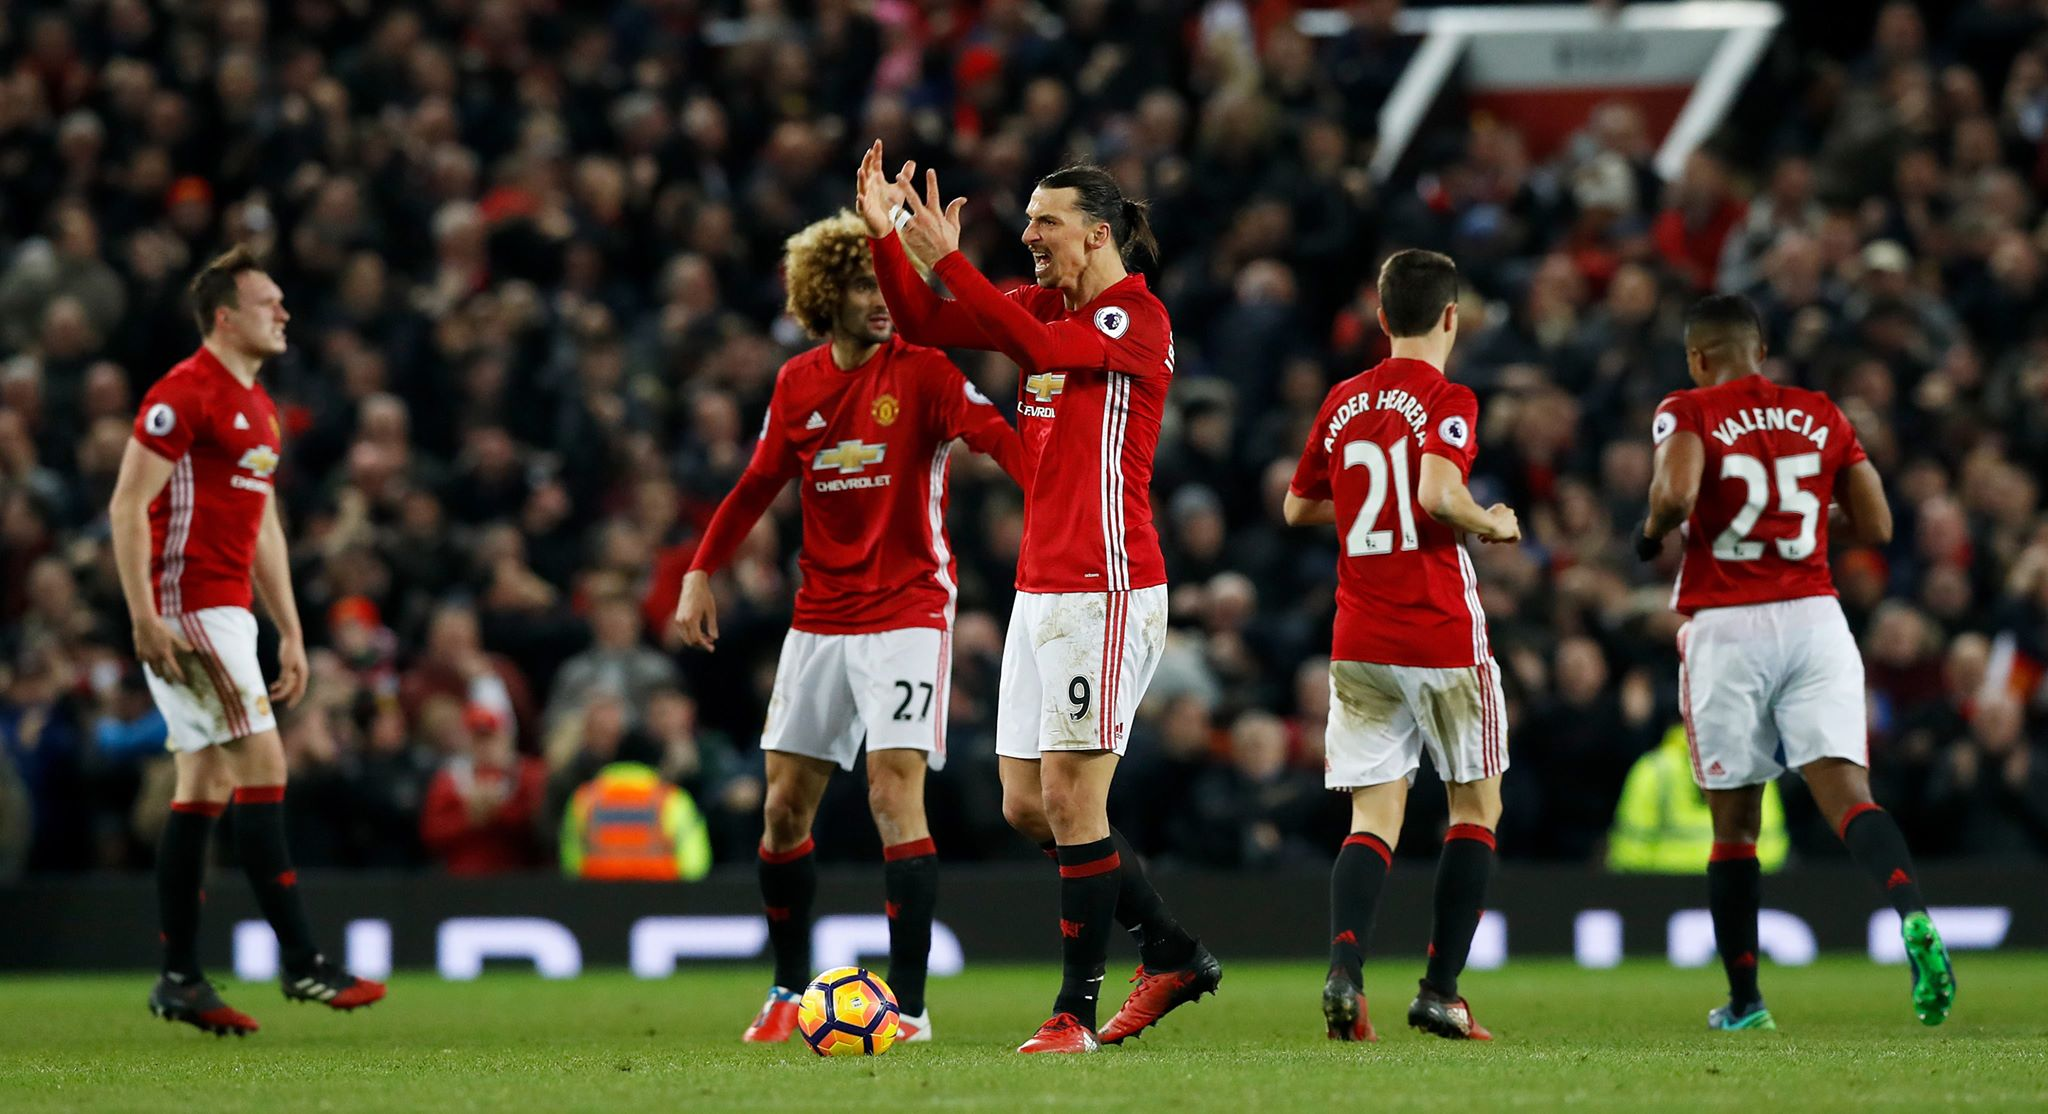 Zlatan Ibrahimovic: 'Injury made it easier to avoid retirement'